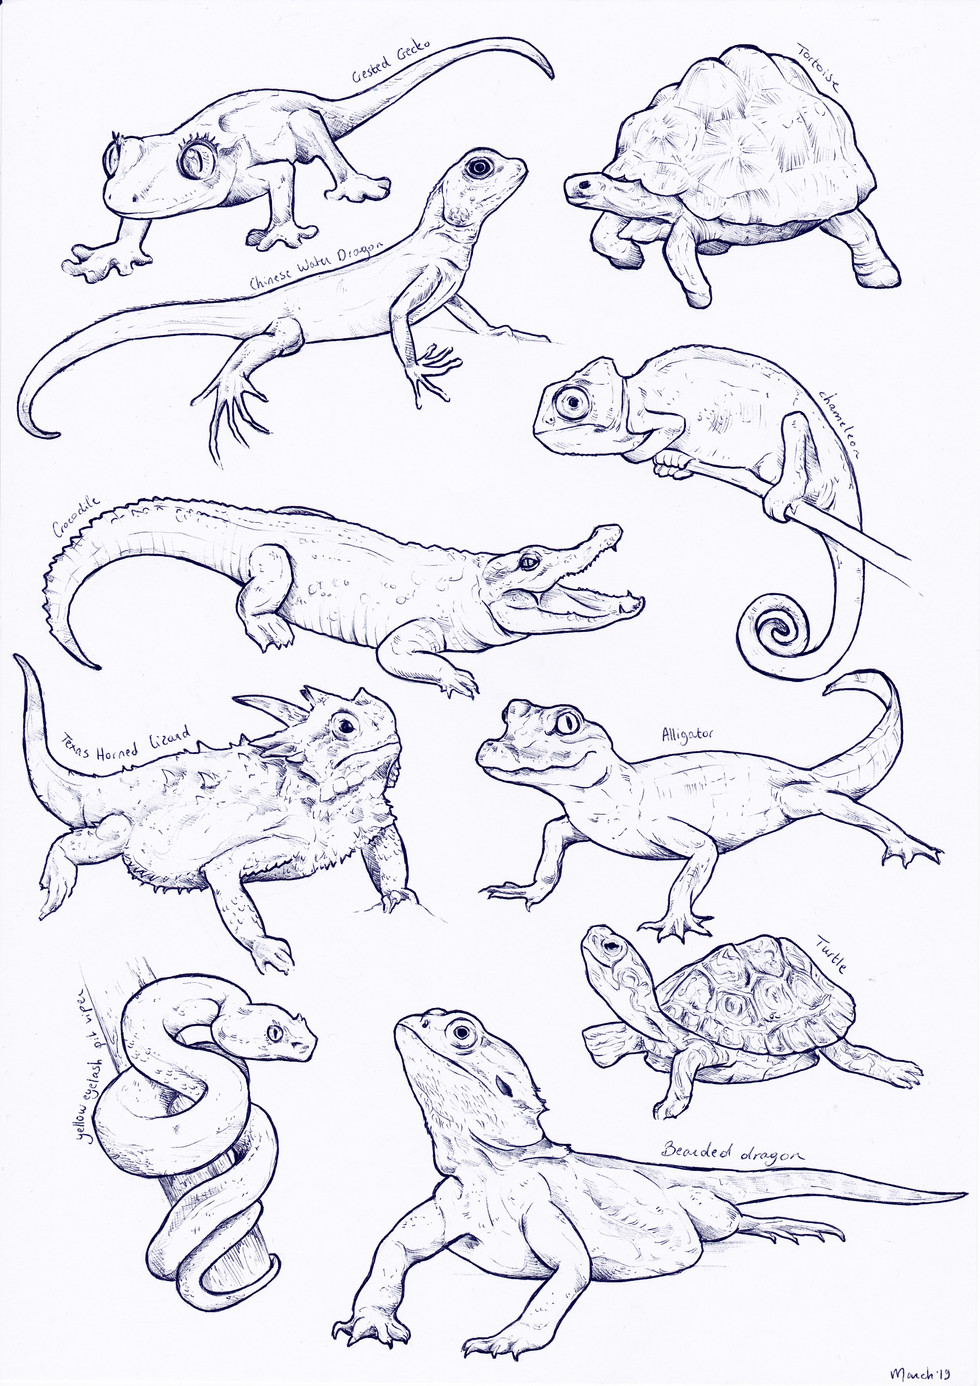 Reptile sketches